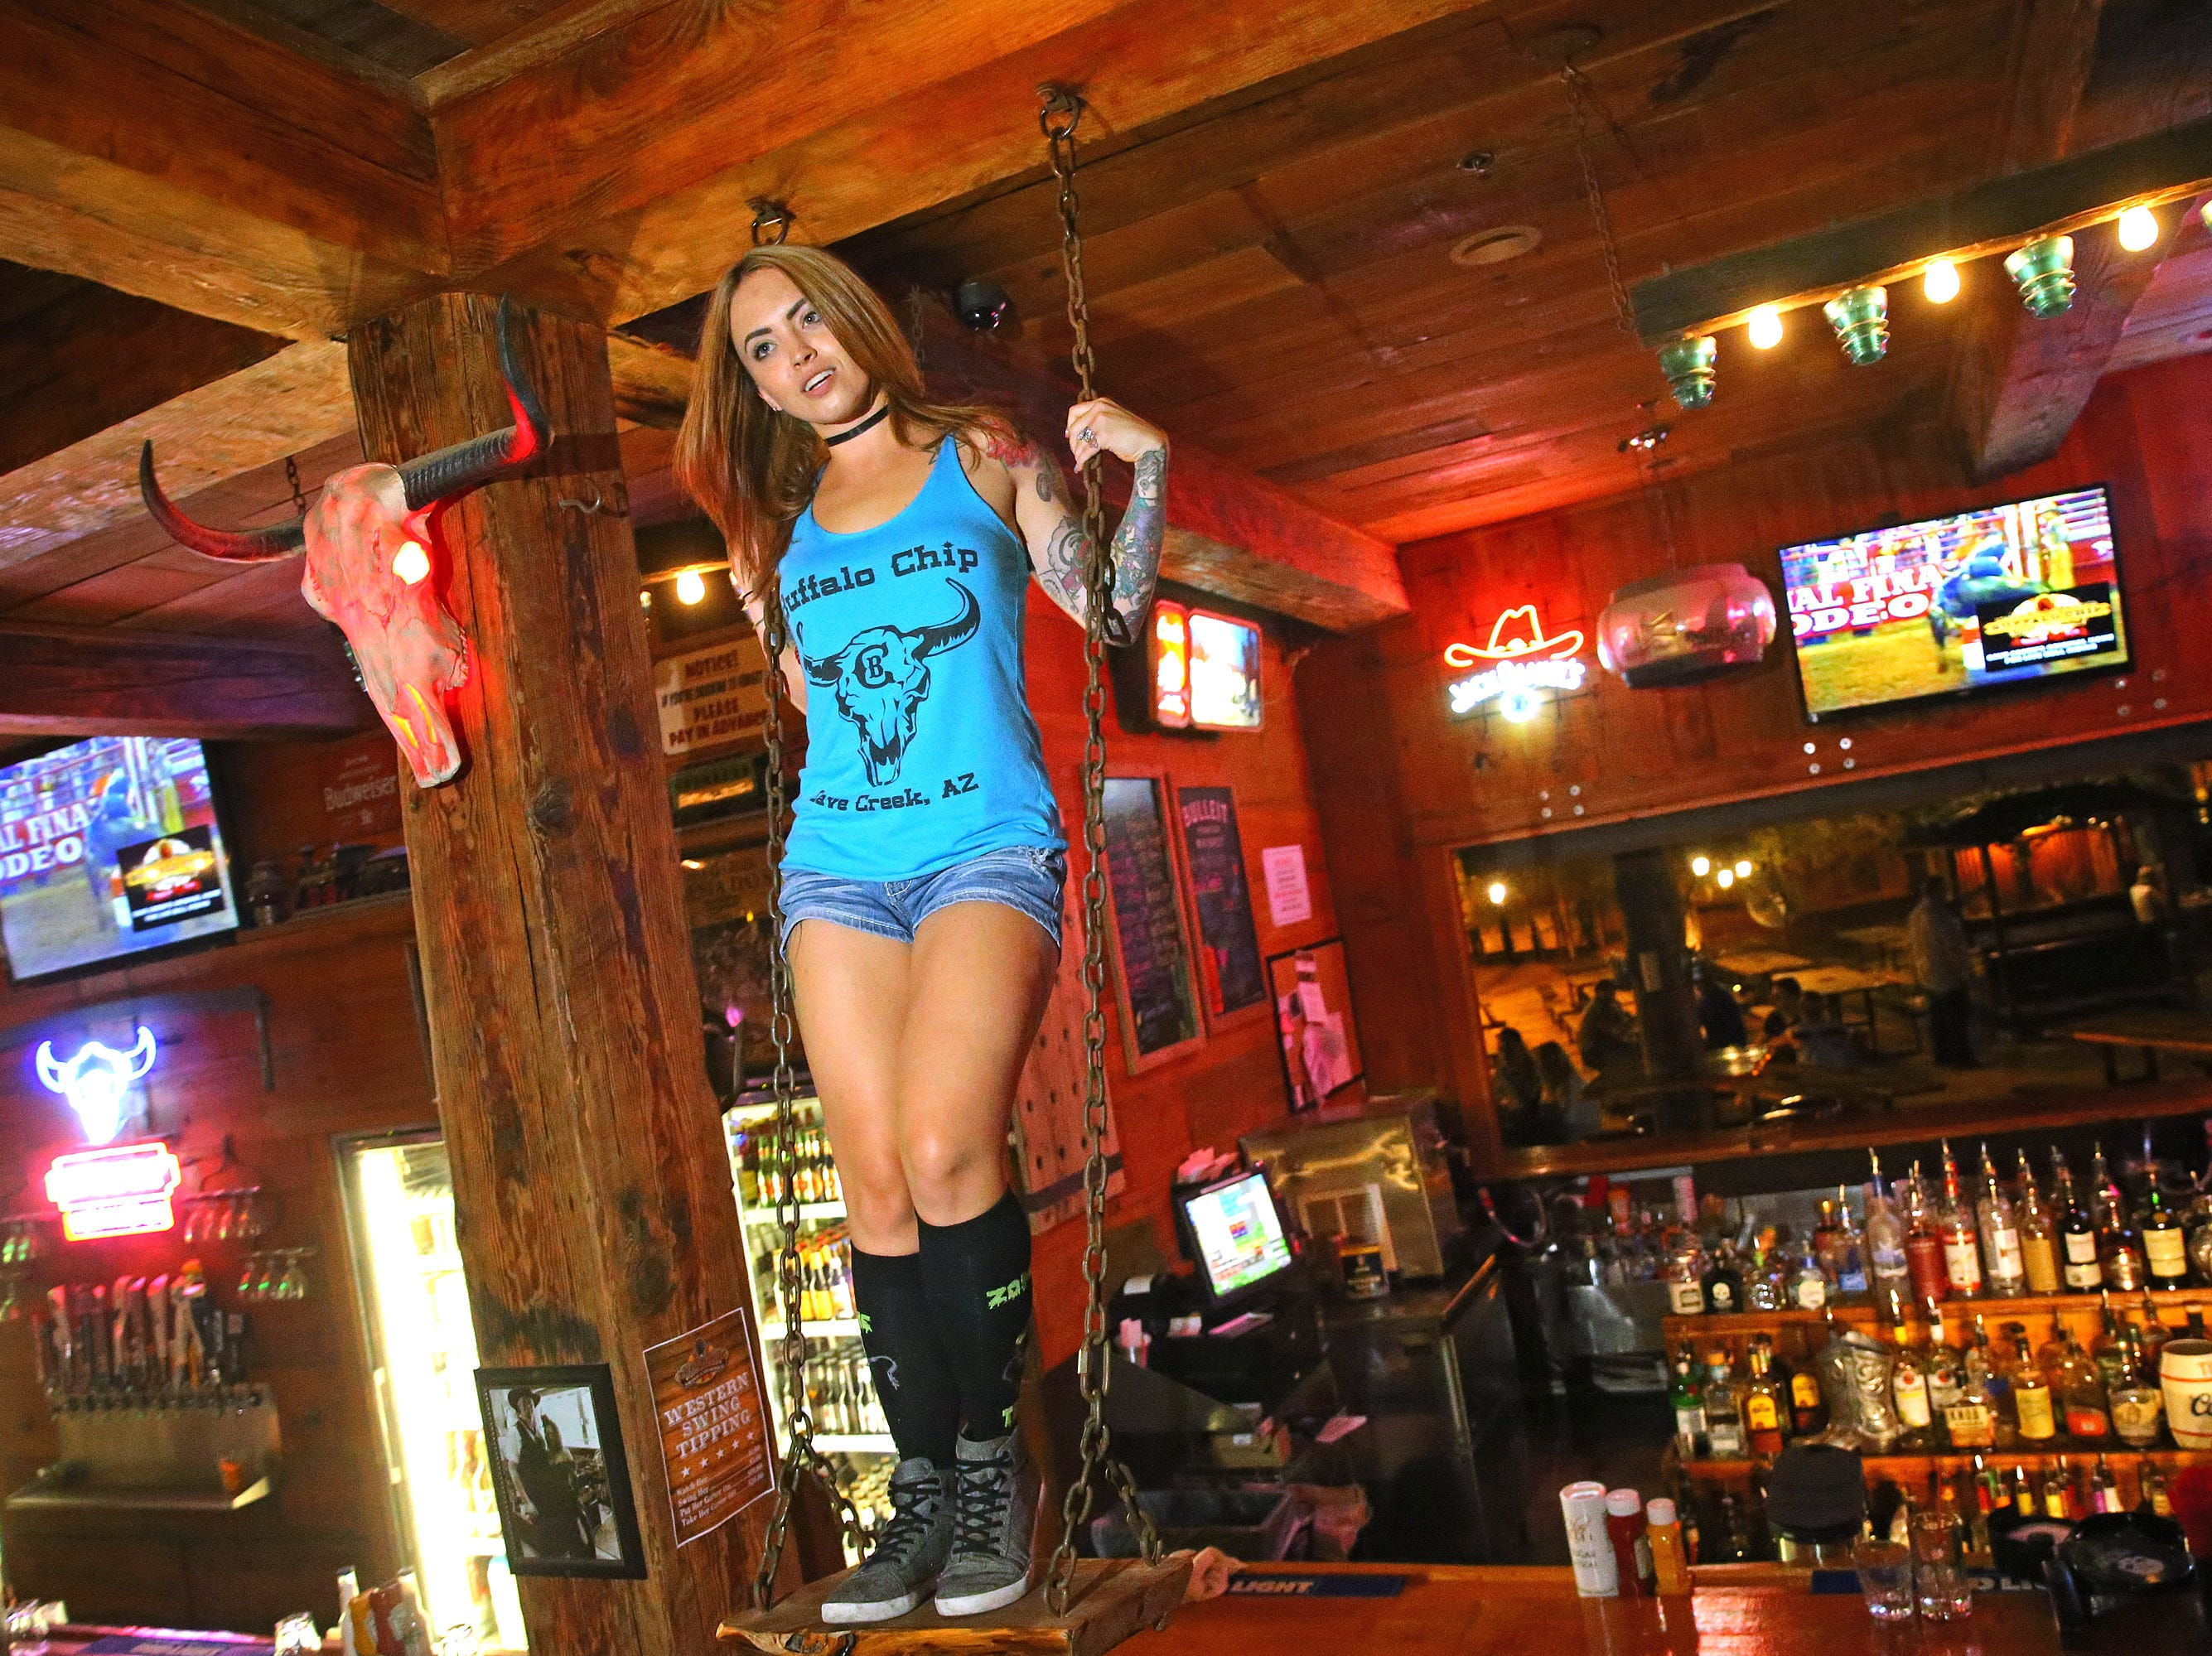 Buffalo Chip Saloon: Buffalo Chip Saloon has been around since 1951, and there's something to do for every cowboy and cowgirl. It's no bull that this saloon offers live bull-riding lessons on Wednesday and Friday evenings. Or if guests prefer something a little gentler, free dance lessons are on Mondays, Tuesdays,Thursdays and Sundays, andlive music on Tuesdays through Sundays. The menu includes fried chicken, smoked brisket, breaded catfish, honey butter biscuits and cowboy beans. Fridays is all-you-can-eat fish fry, too. This is an all-ages spot, but those under 21 need to have a parent or guardian. Details:6823E. Cave Creek Road, Cave Creek. 480-488-9118, buffalochipsaloon.com.